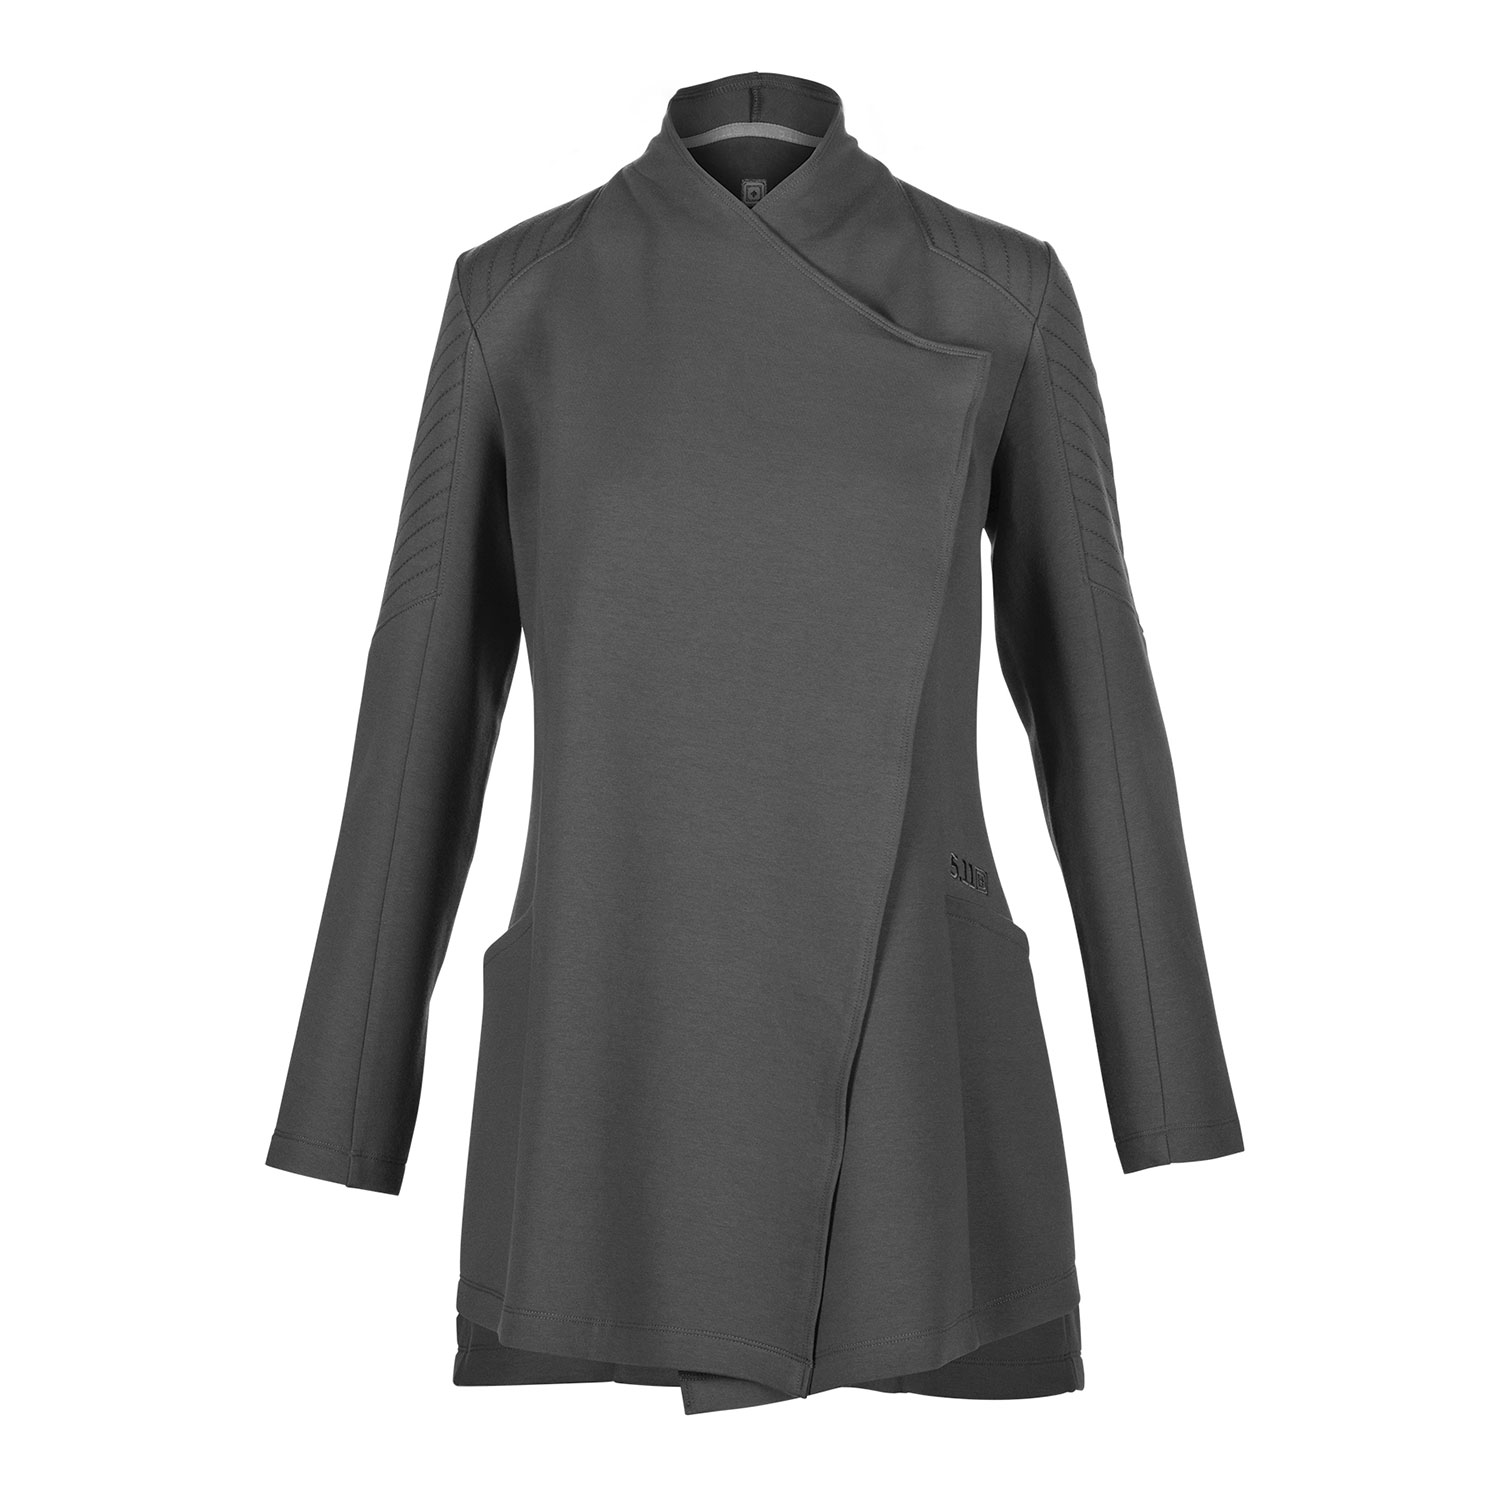 5.11 Womens Audrey Coverup